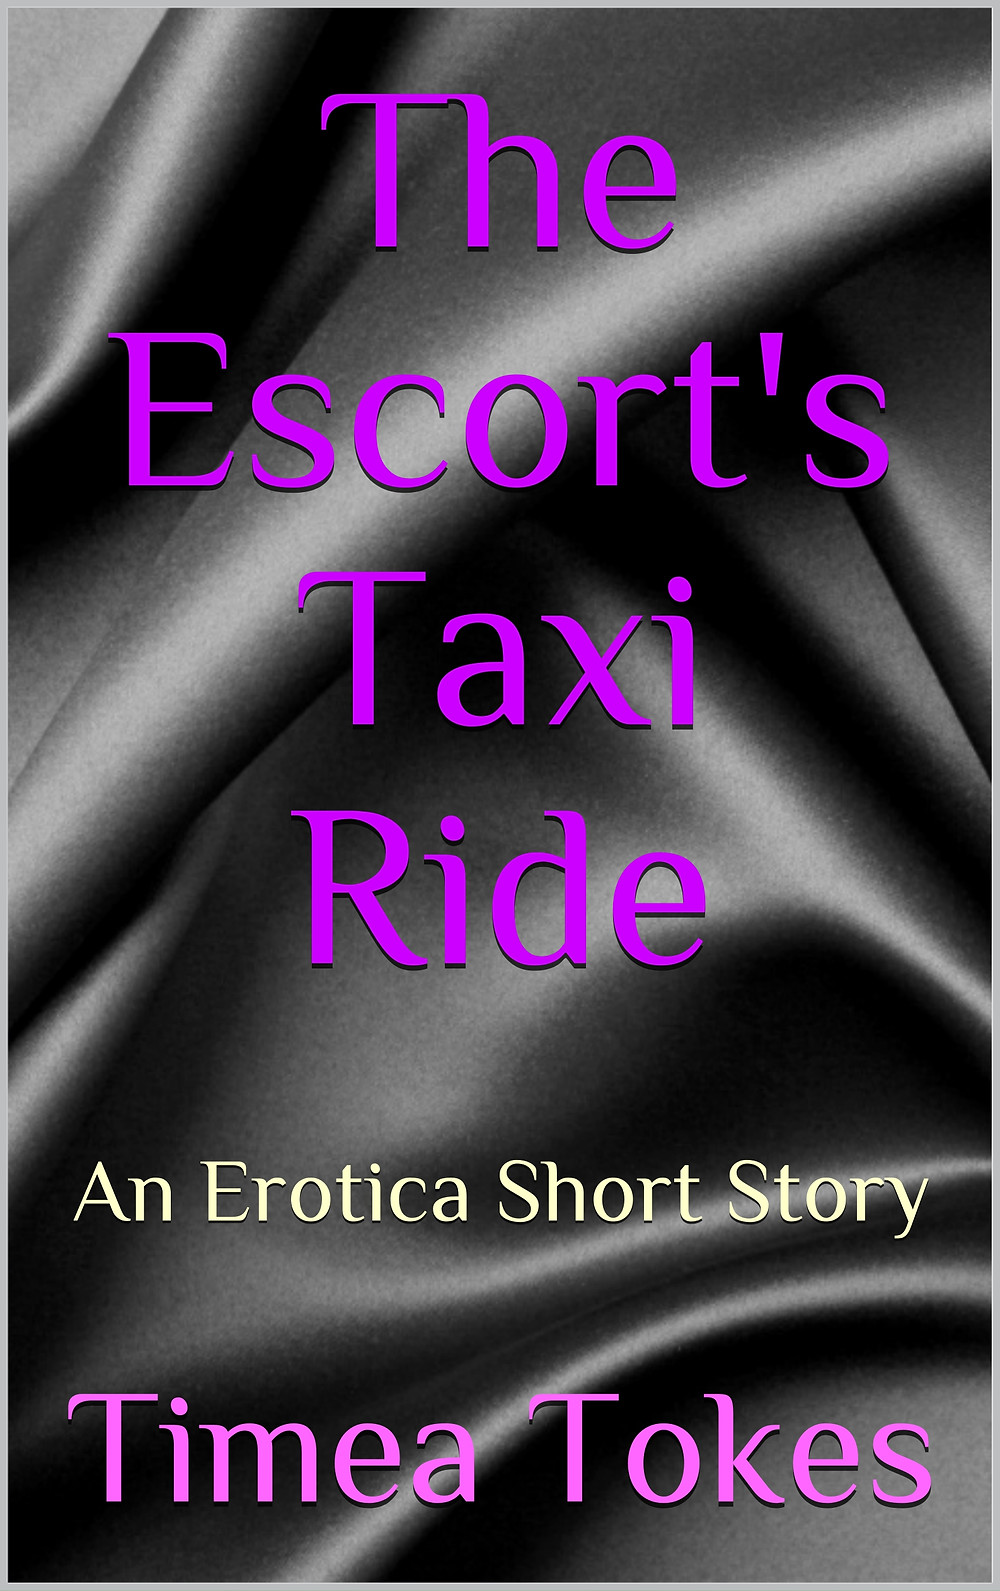 The Escort's Taxi Ride by Timea Tokes